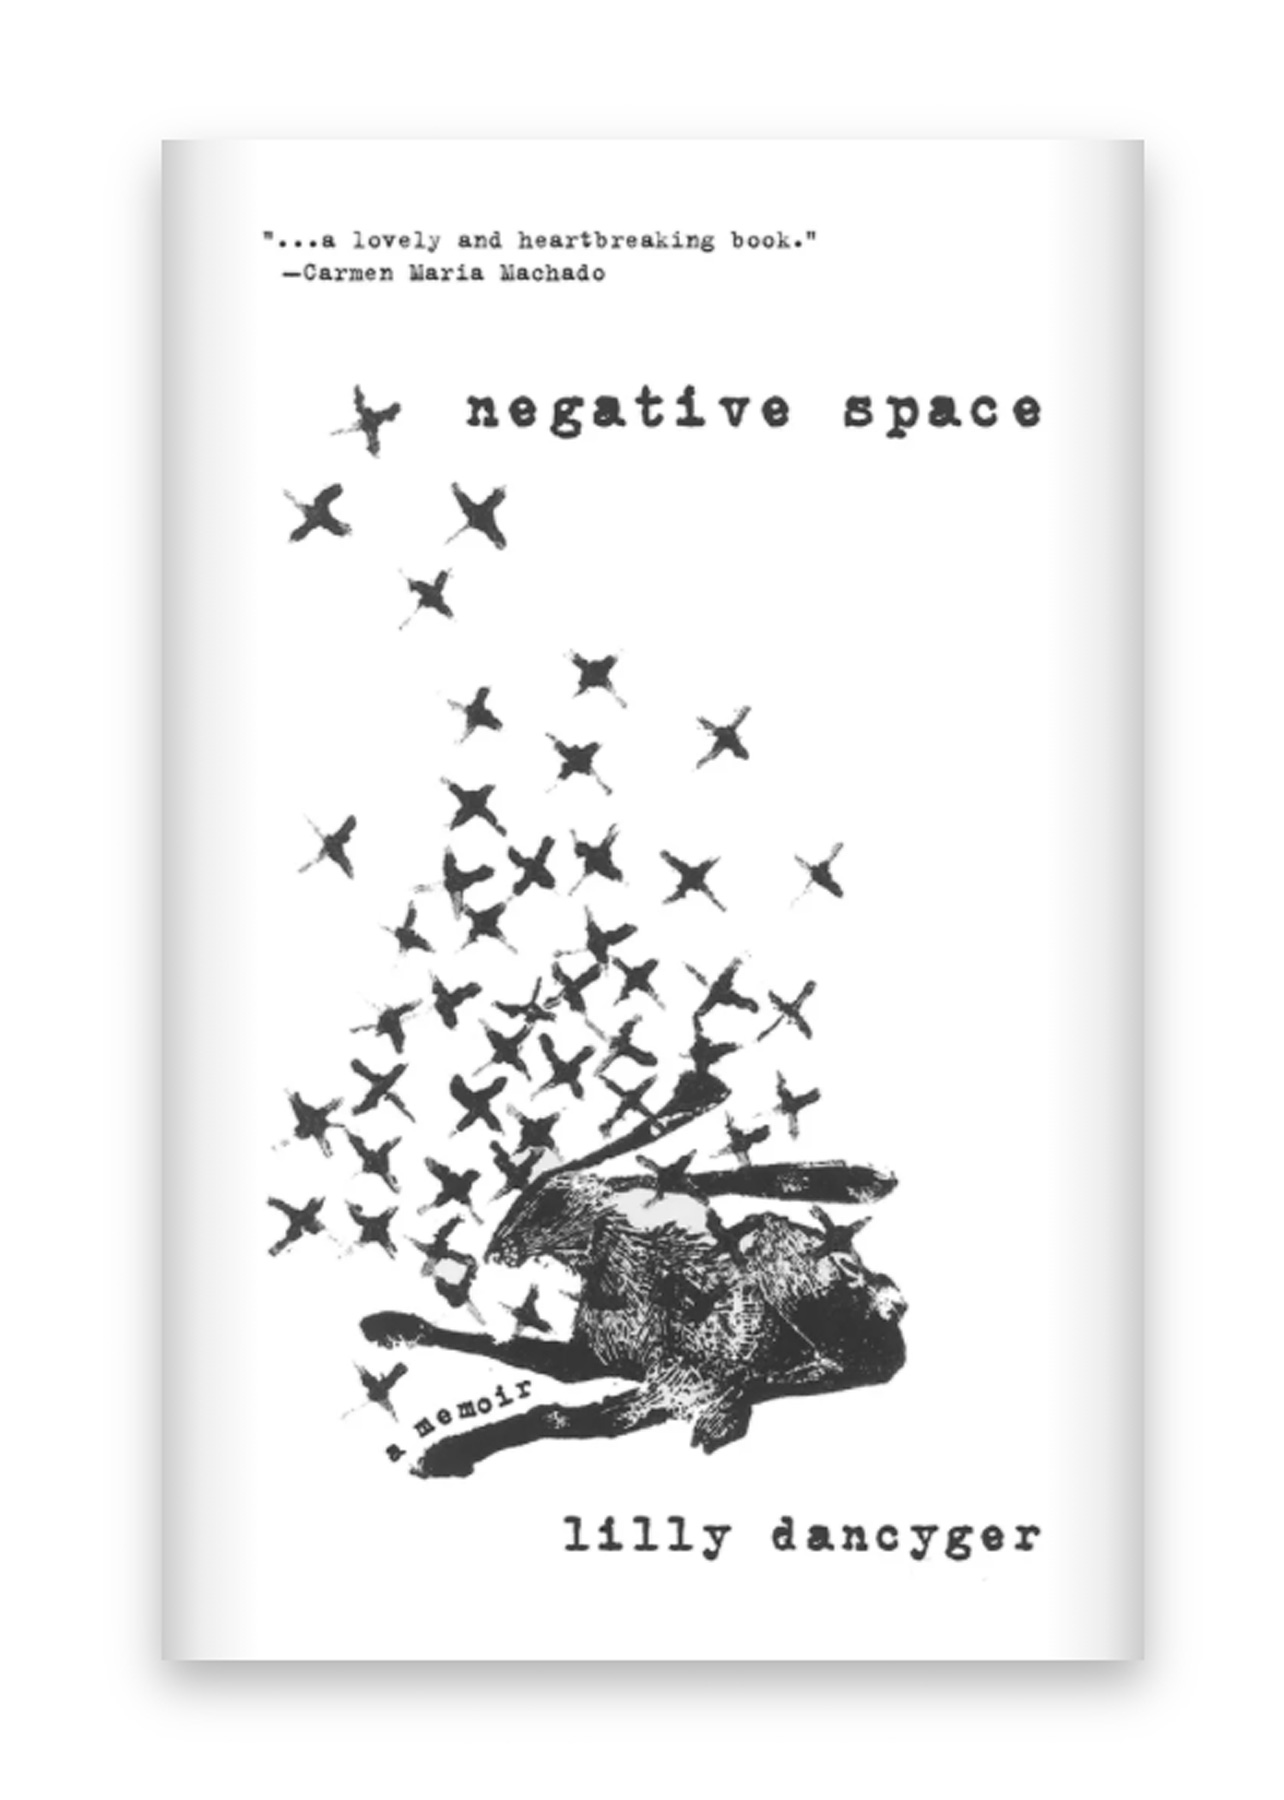 Best Spring Books to Read 2021: Negative Space by Lilly Dancyger